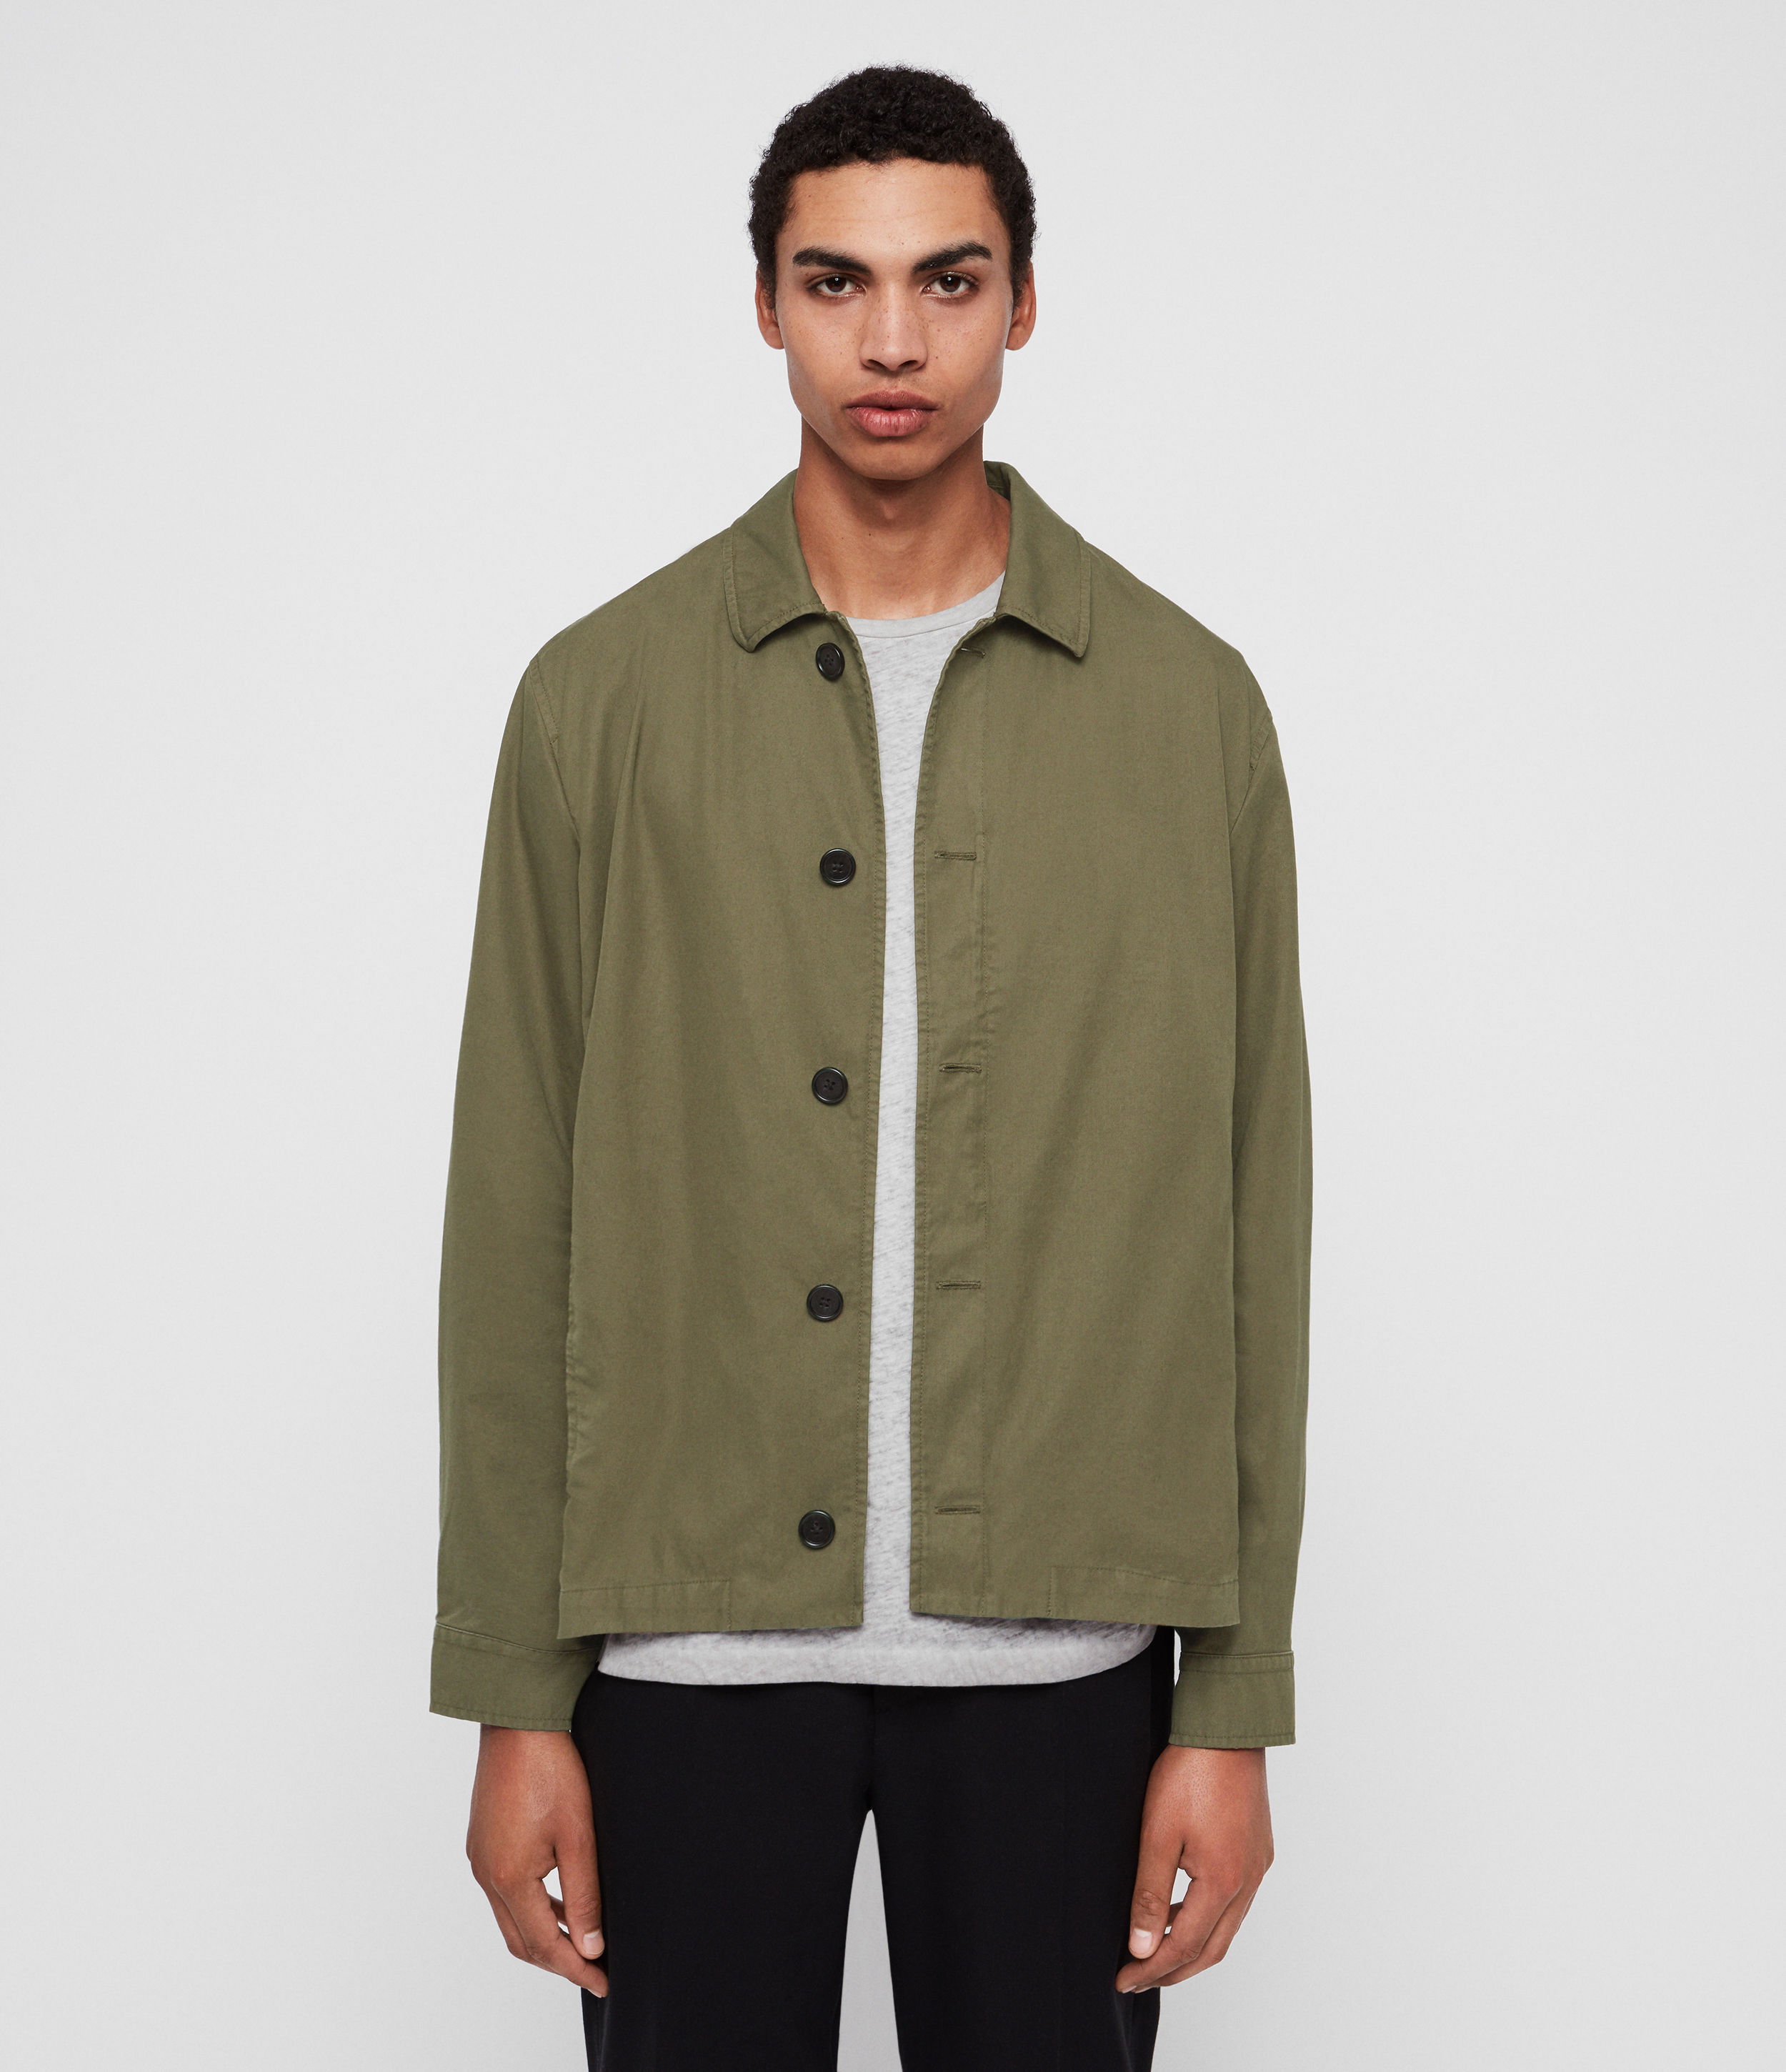 AllSaints Ruston Jacket